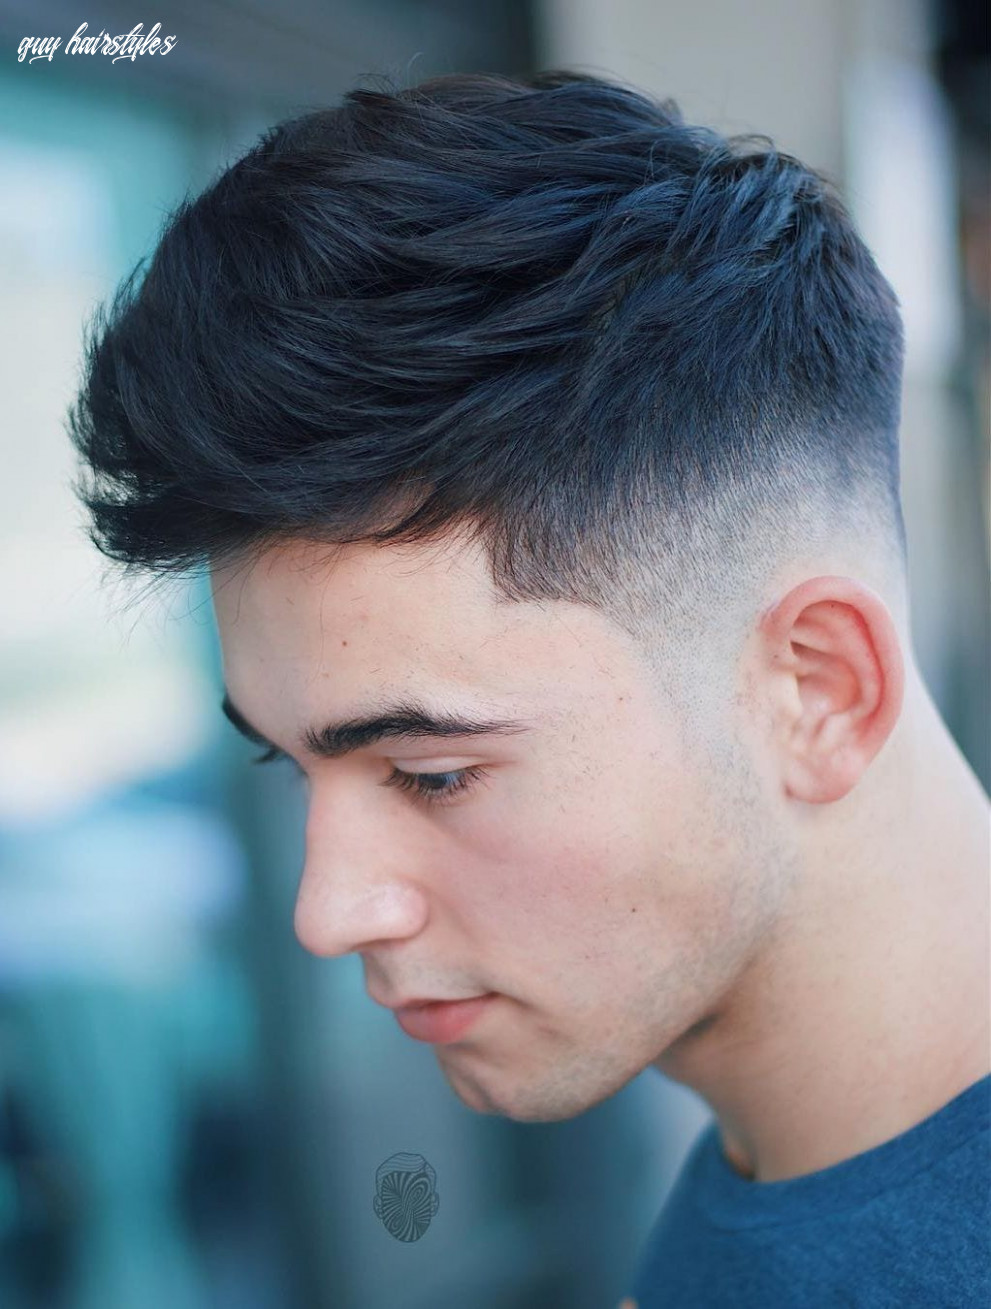 10 best hairstyles for teenage boys the ultimate guide 10 guy hairstyles